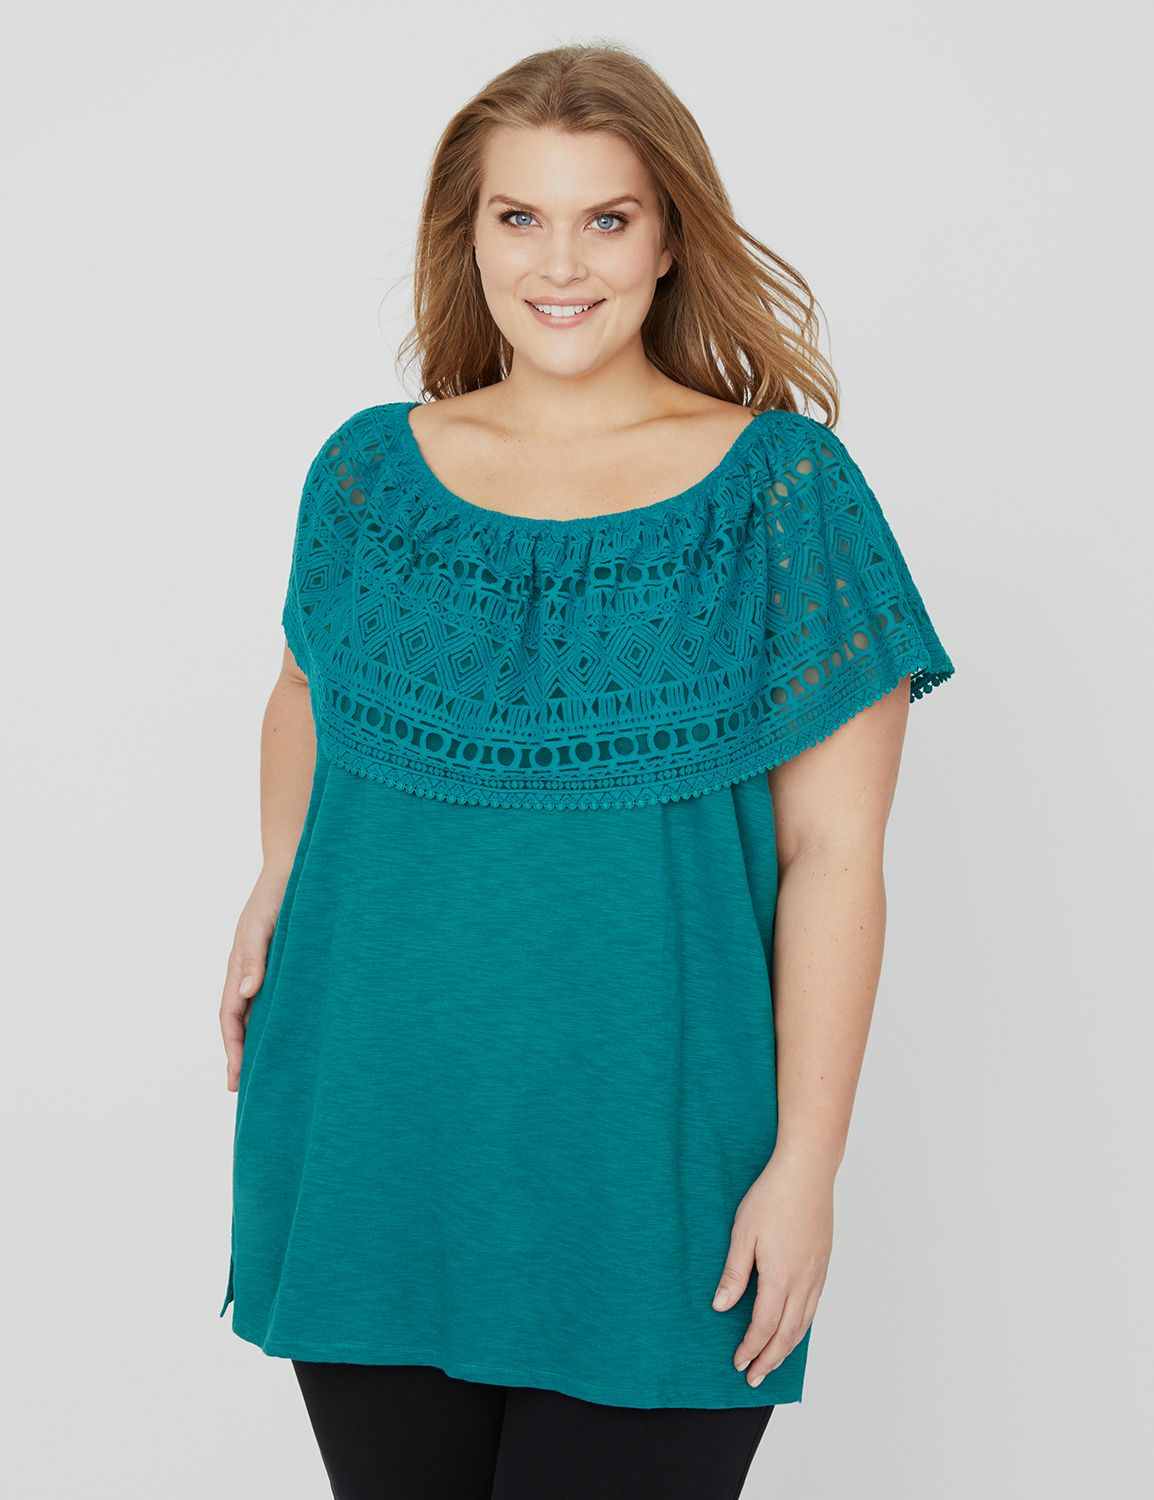 Shaded Cove Off-the-Shoulder Top 1088202 BURNOUT FLOUNCE OFF SHOULDE MP-300101841